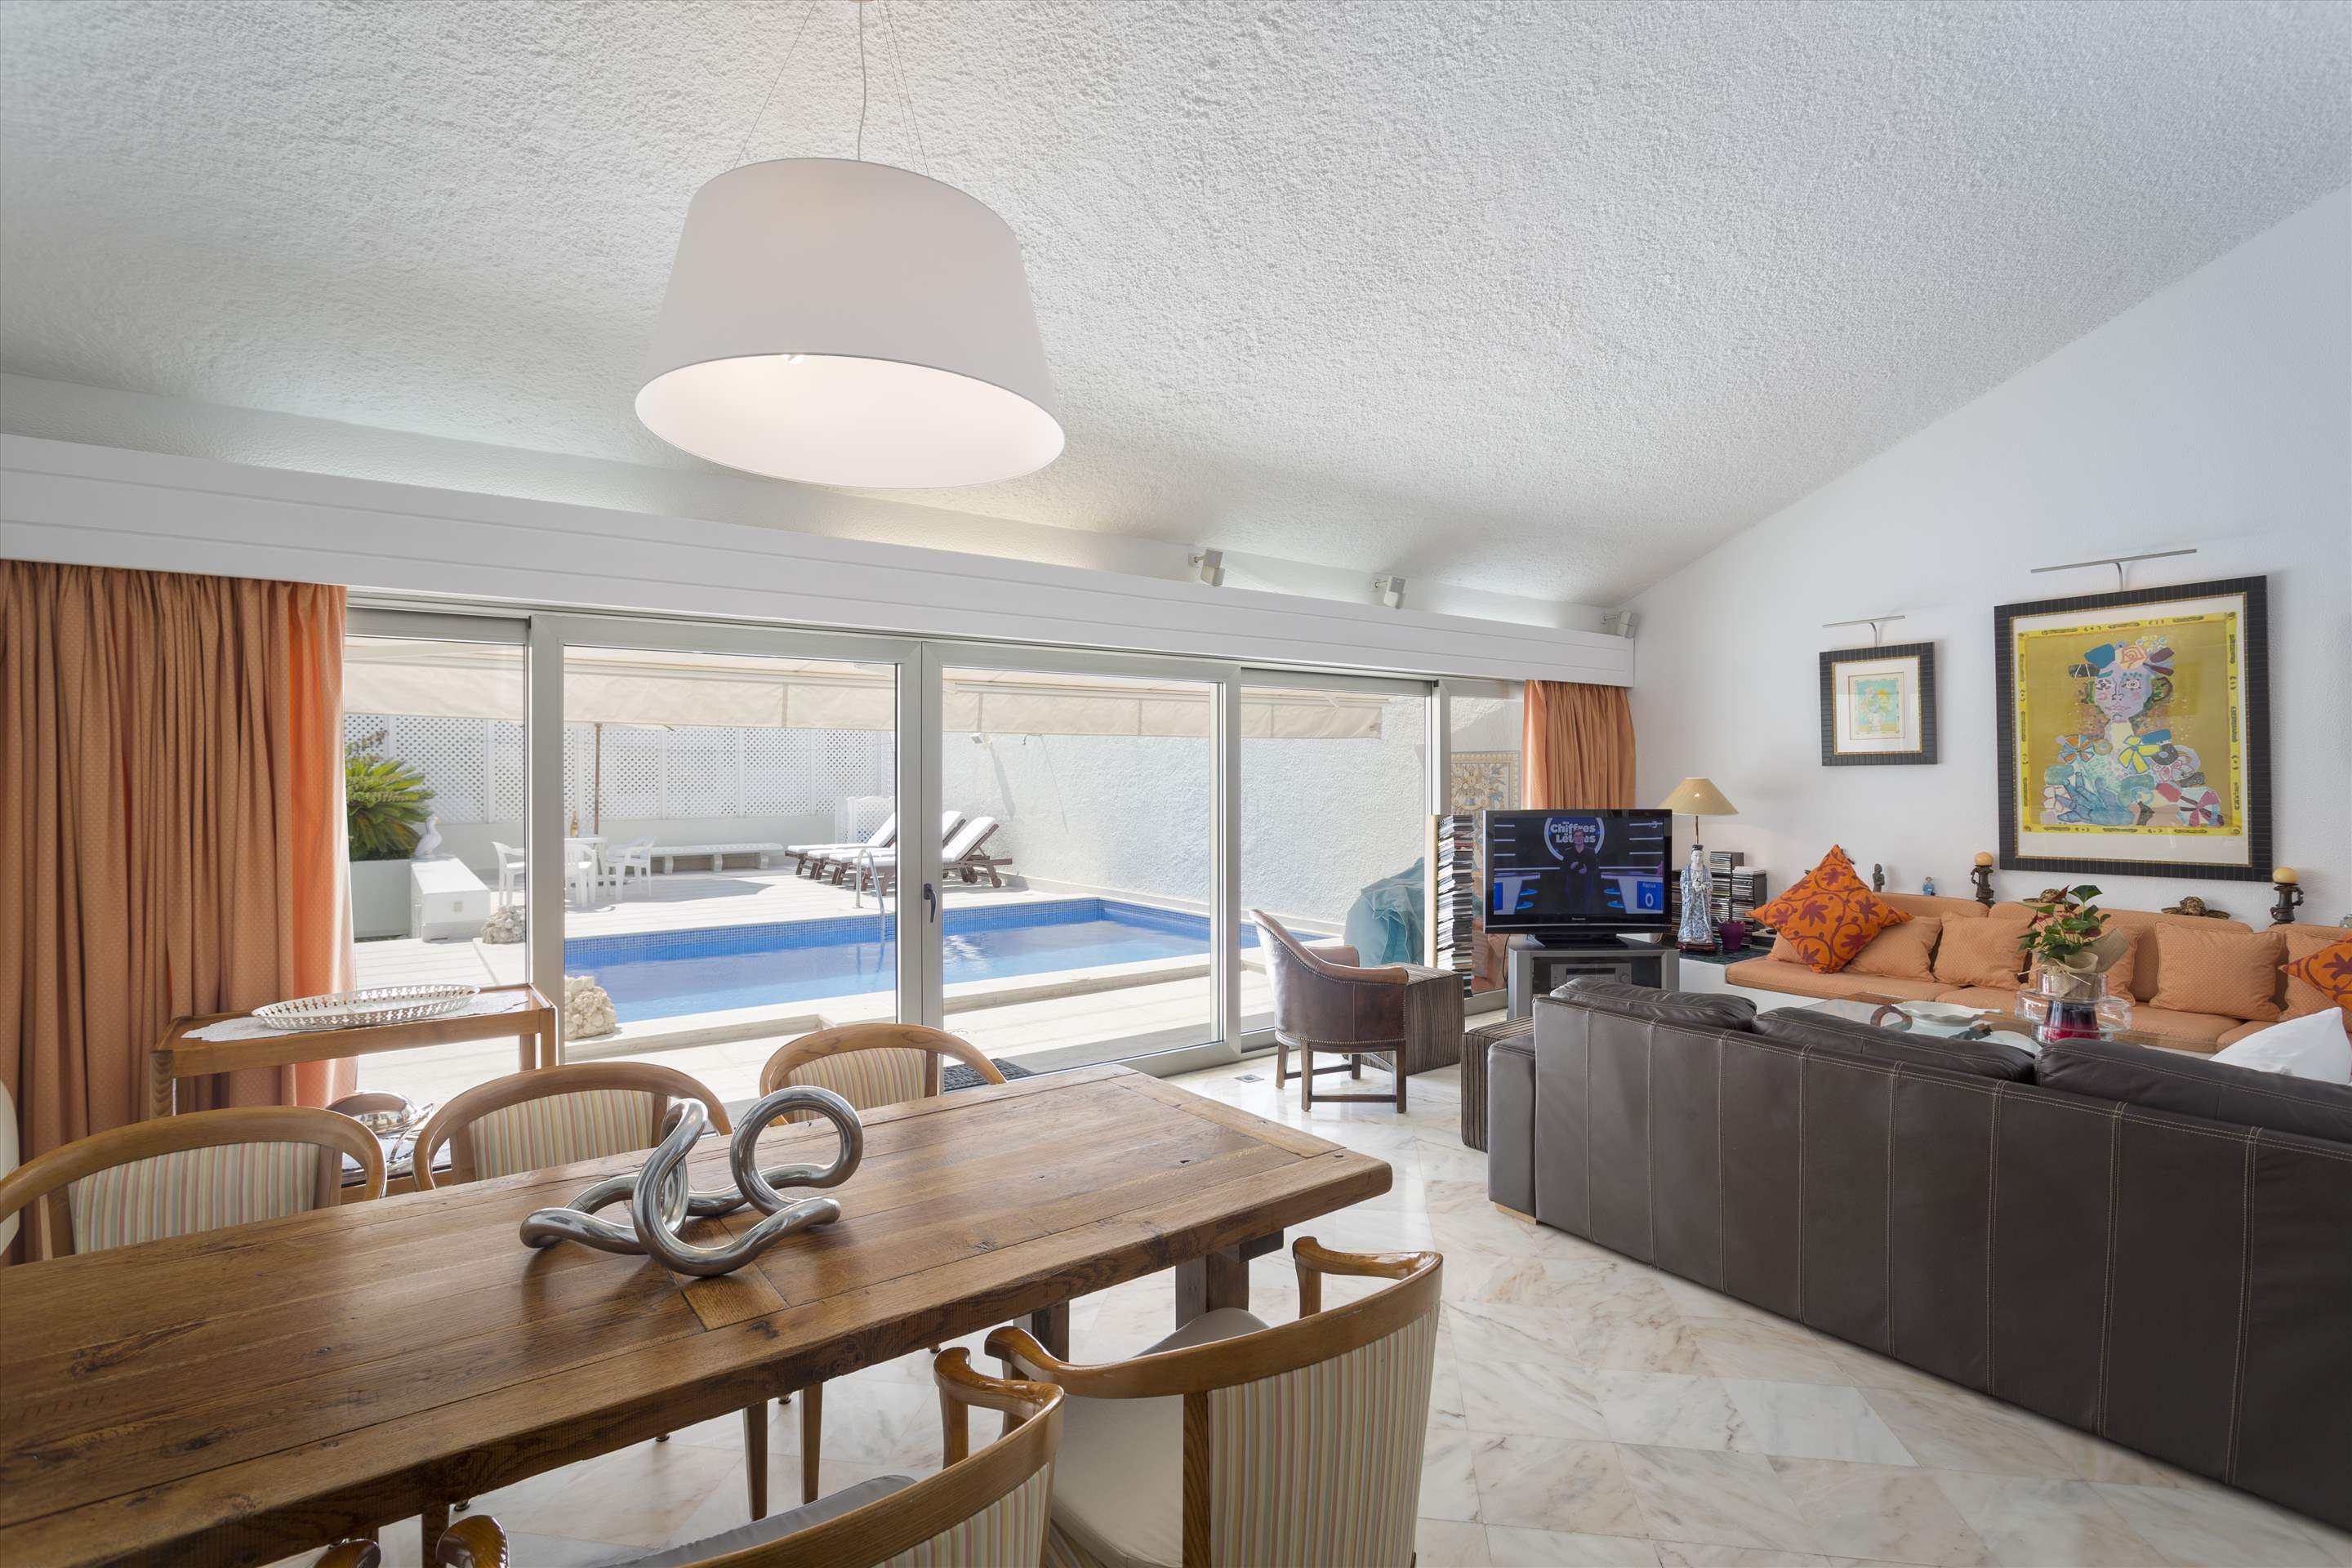 Villa Valerie one, 3 bedroom villa in Vilamoura Area, Algarve Photo #5